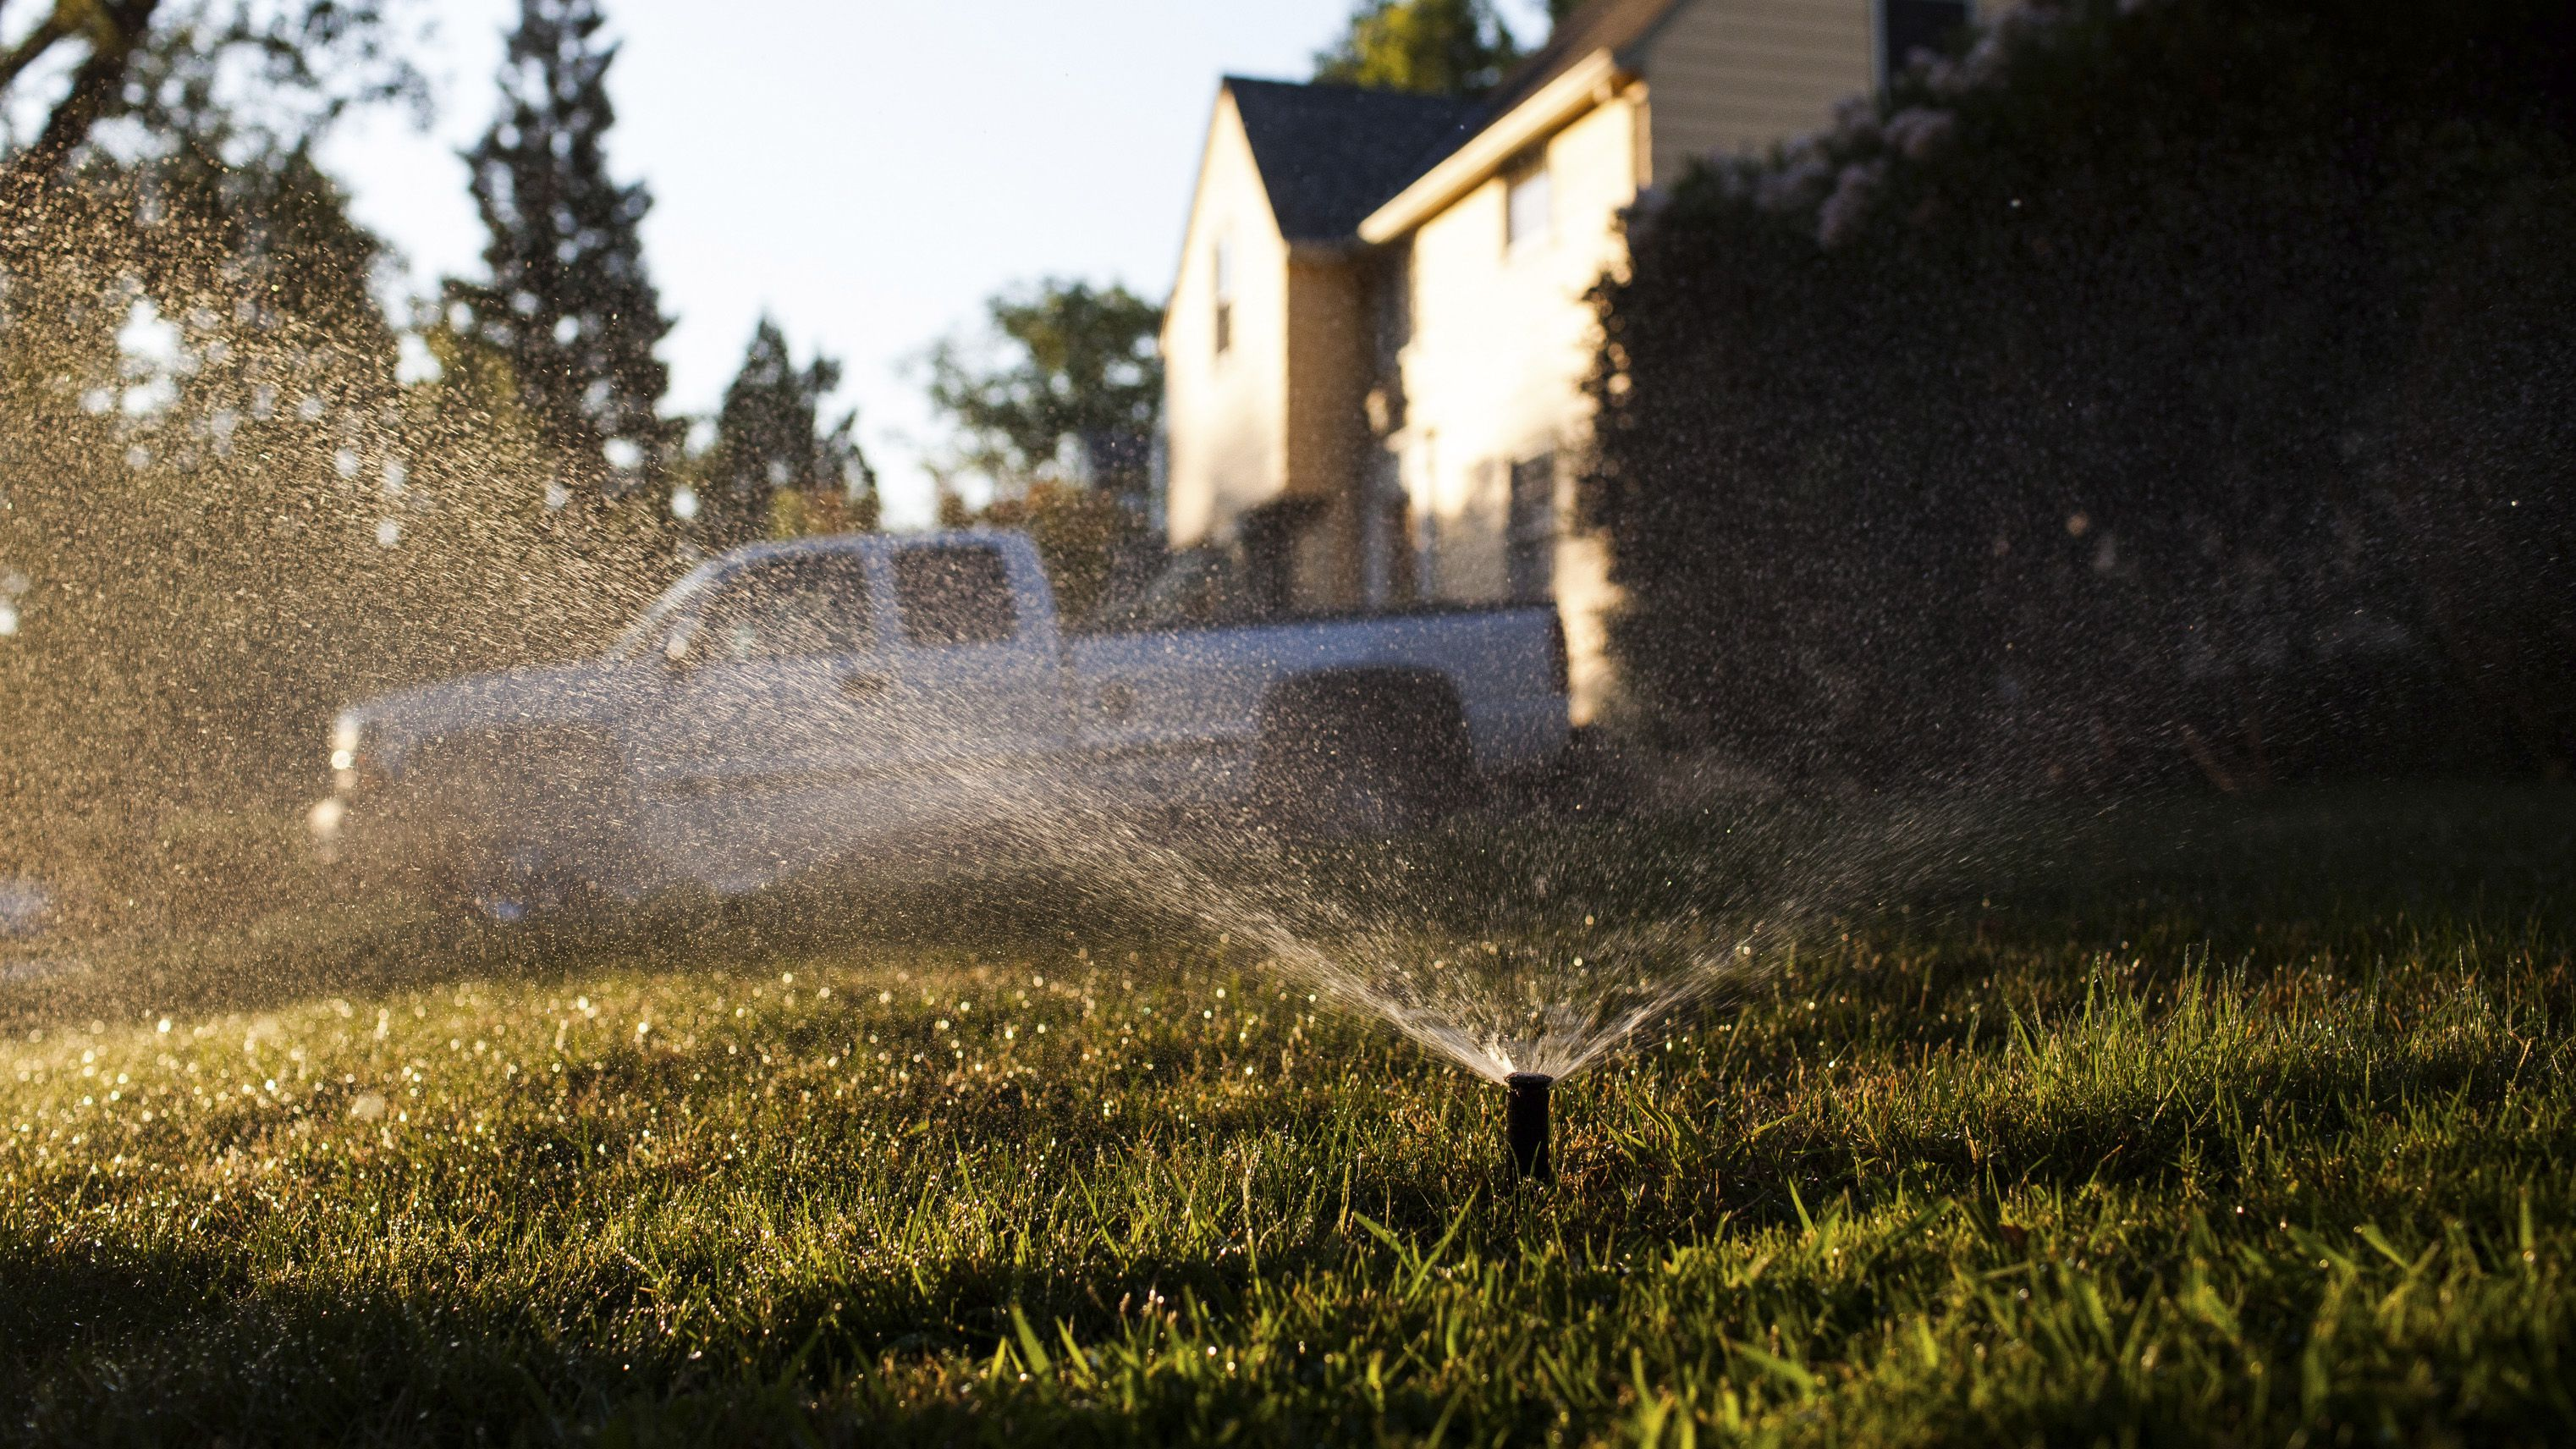 """california hydrant water theft thieves black market water usage siphon illegal drought Sprinklers spray water at a home in Sacramento, California on a mandatory """"no watering"""" day, August 15, 2014. Penalties for illegal watering in Sacramento range from a warning for the first violation to a $1000 fine for the fourth violation. Water regulators in California approved tough new conservation measures last month to limit outdoor water use. California is in the third year of a catastrophic drought that has diminished the Sierra Nevada snow pack, which normally feeds the state's rivers and streams with cool water. REUTERS/Max Whittaker"""